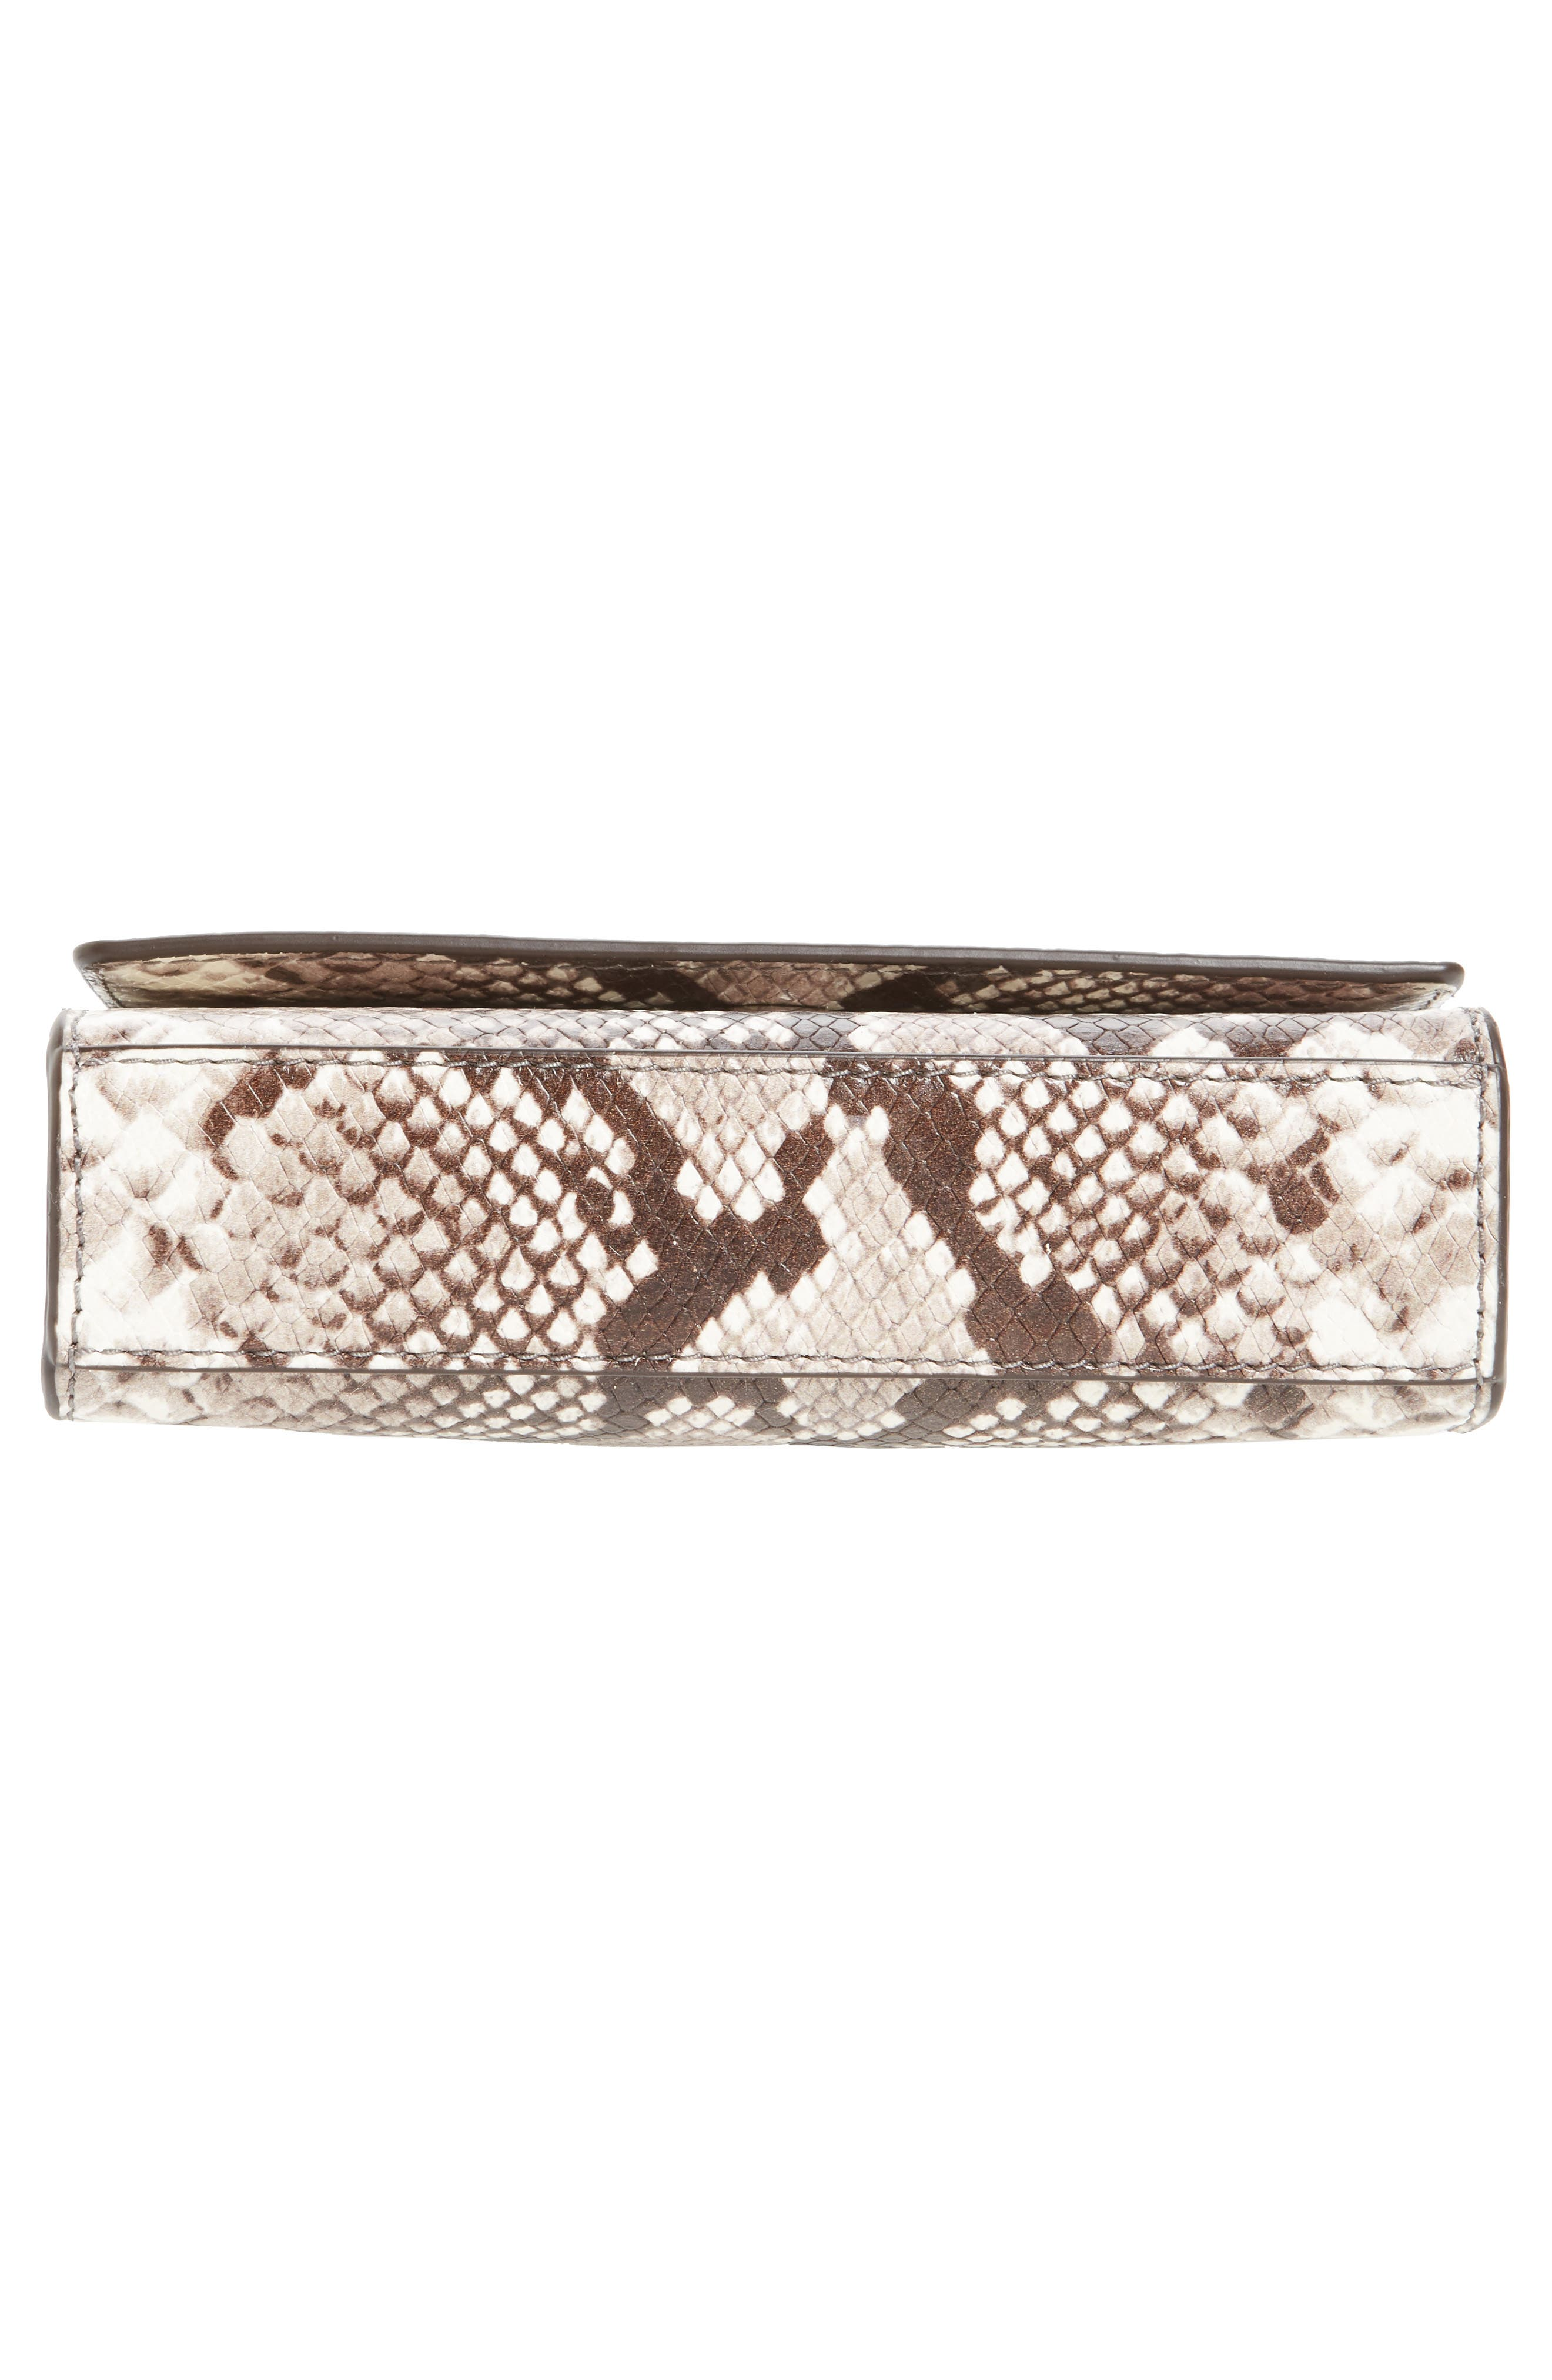 Ruby Leather Clutch,                             Alternate thumbnail 6, color,                             269